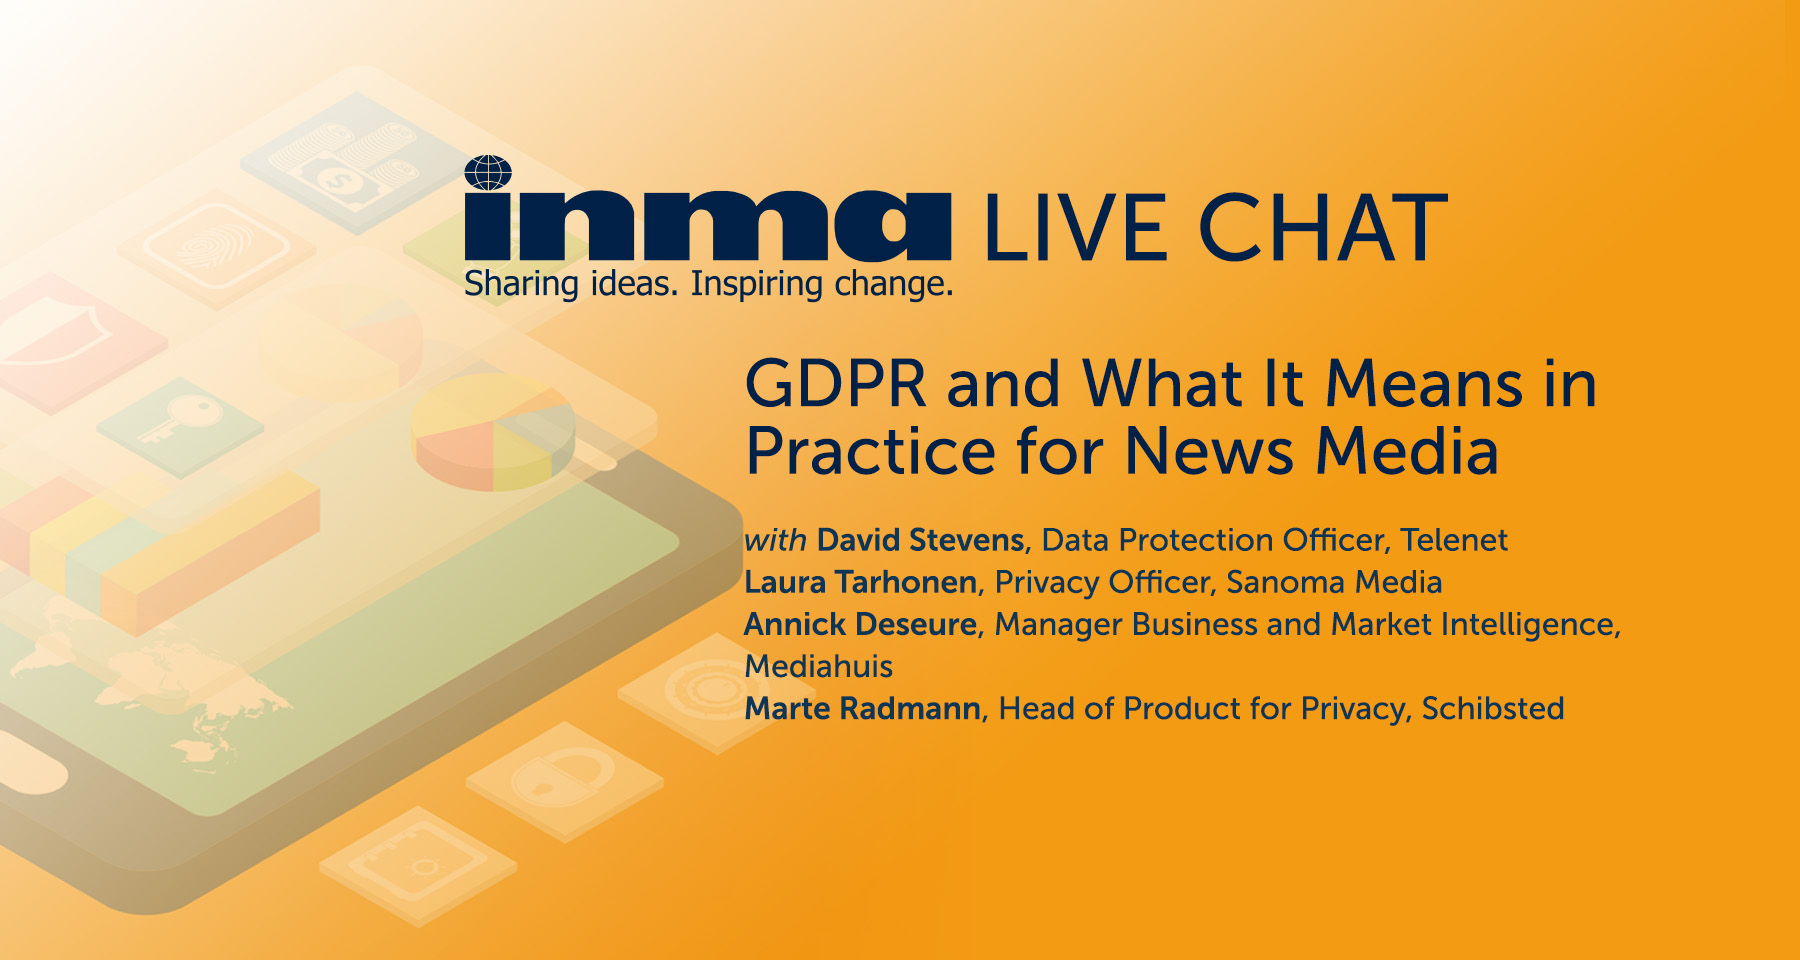 4 tips for GDPR implementation at your news media company